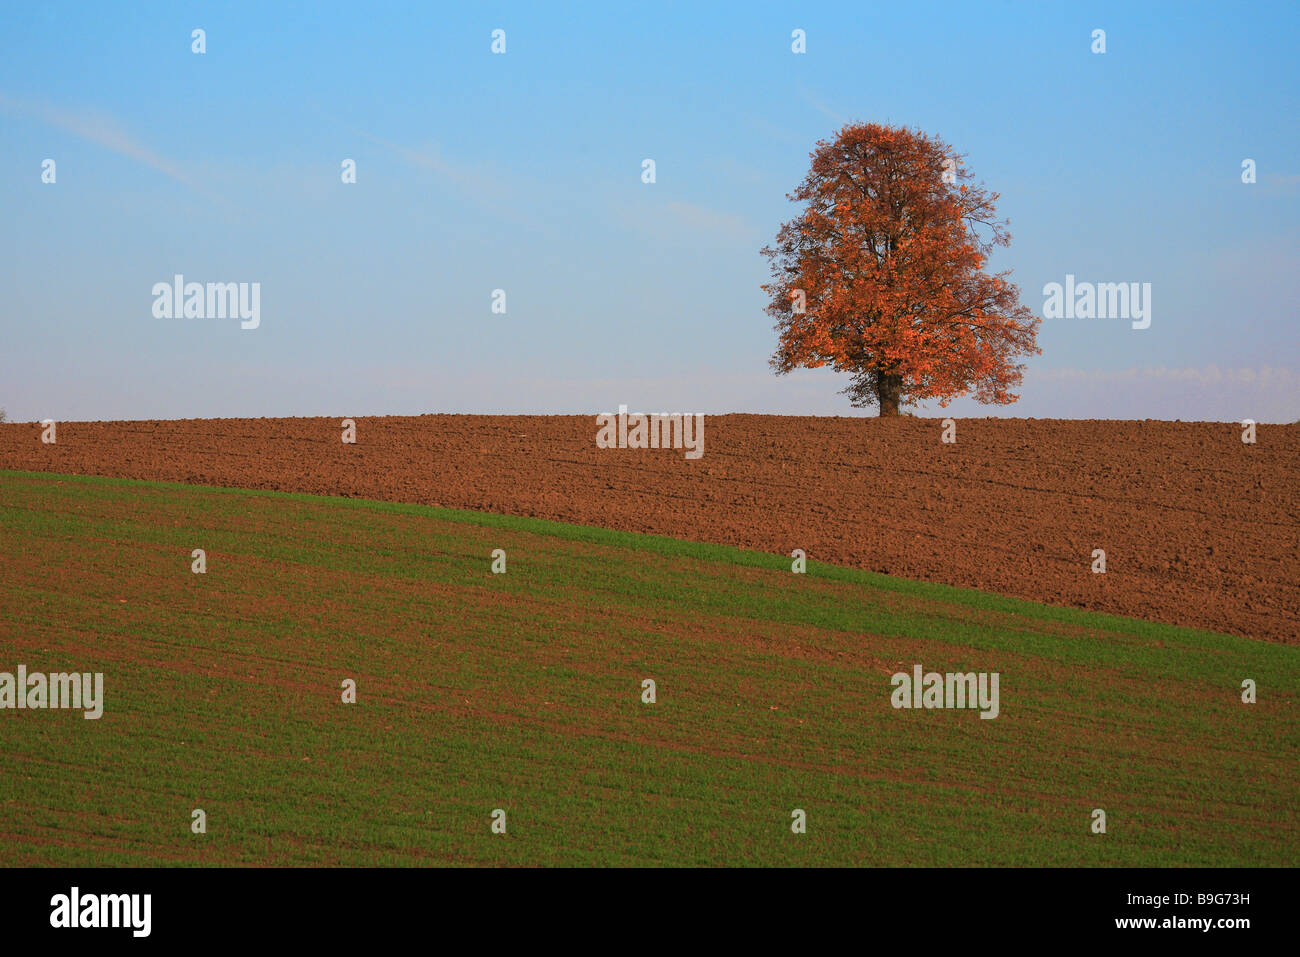 Limetree in autumn - Stock Image